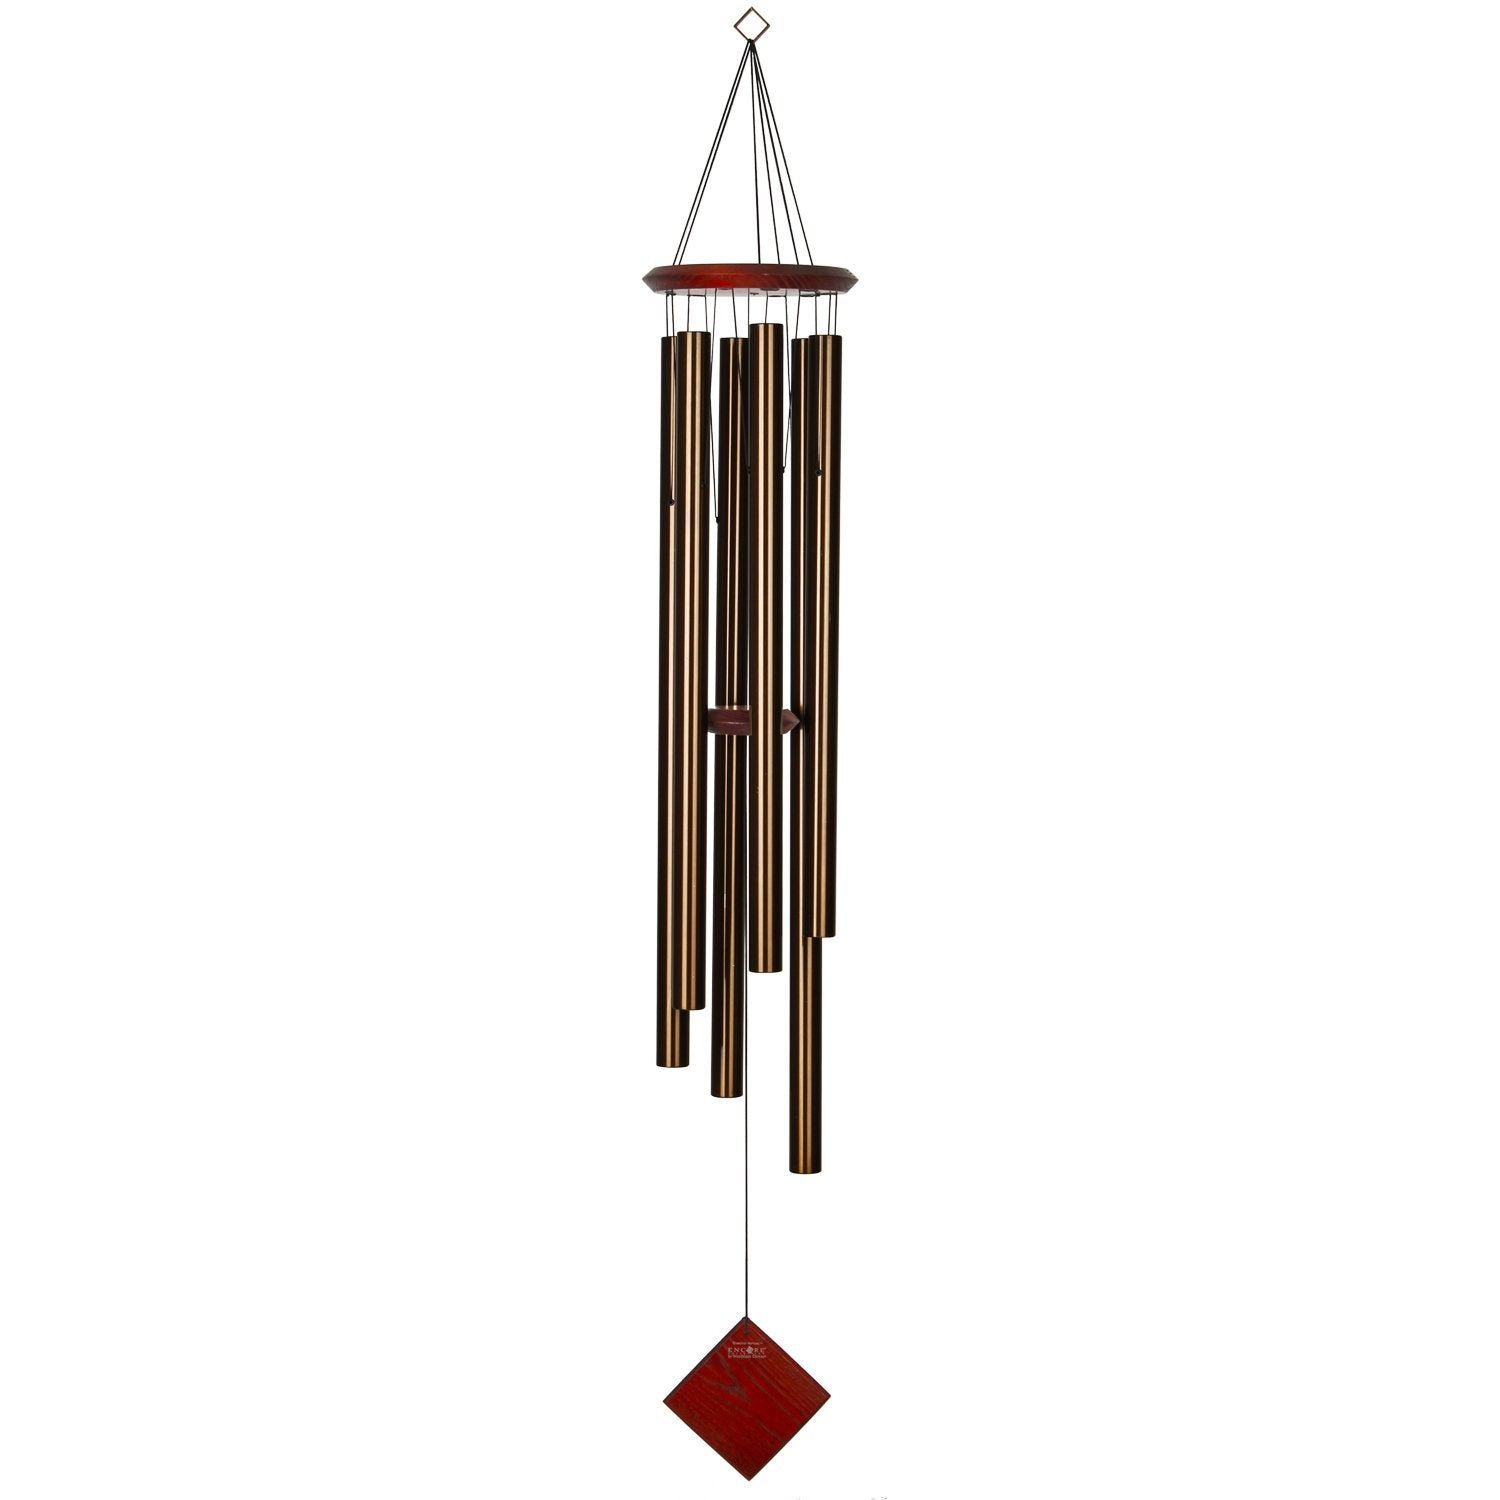 Encore Chimes of Neptune - Bronze full product image